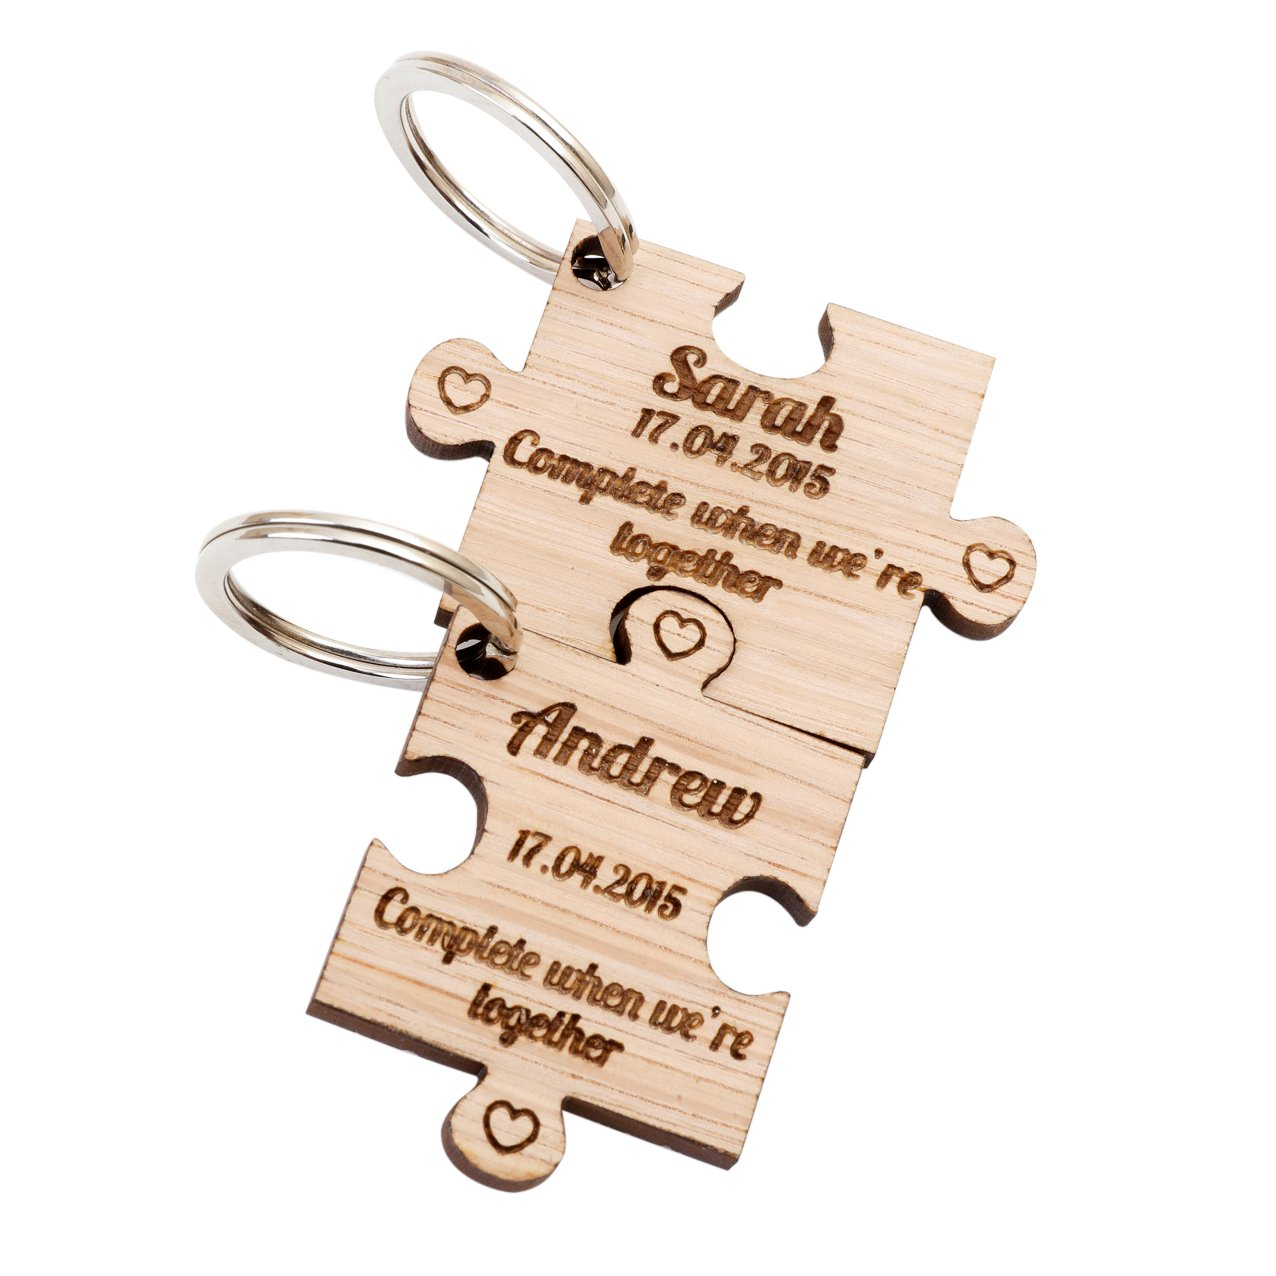 2 x Personalised Jigsaw Puzzle Piece Wooden Keyrings Each Engraved with a Name /& Date